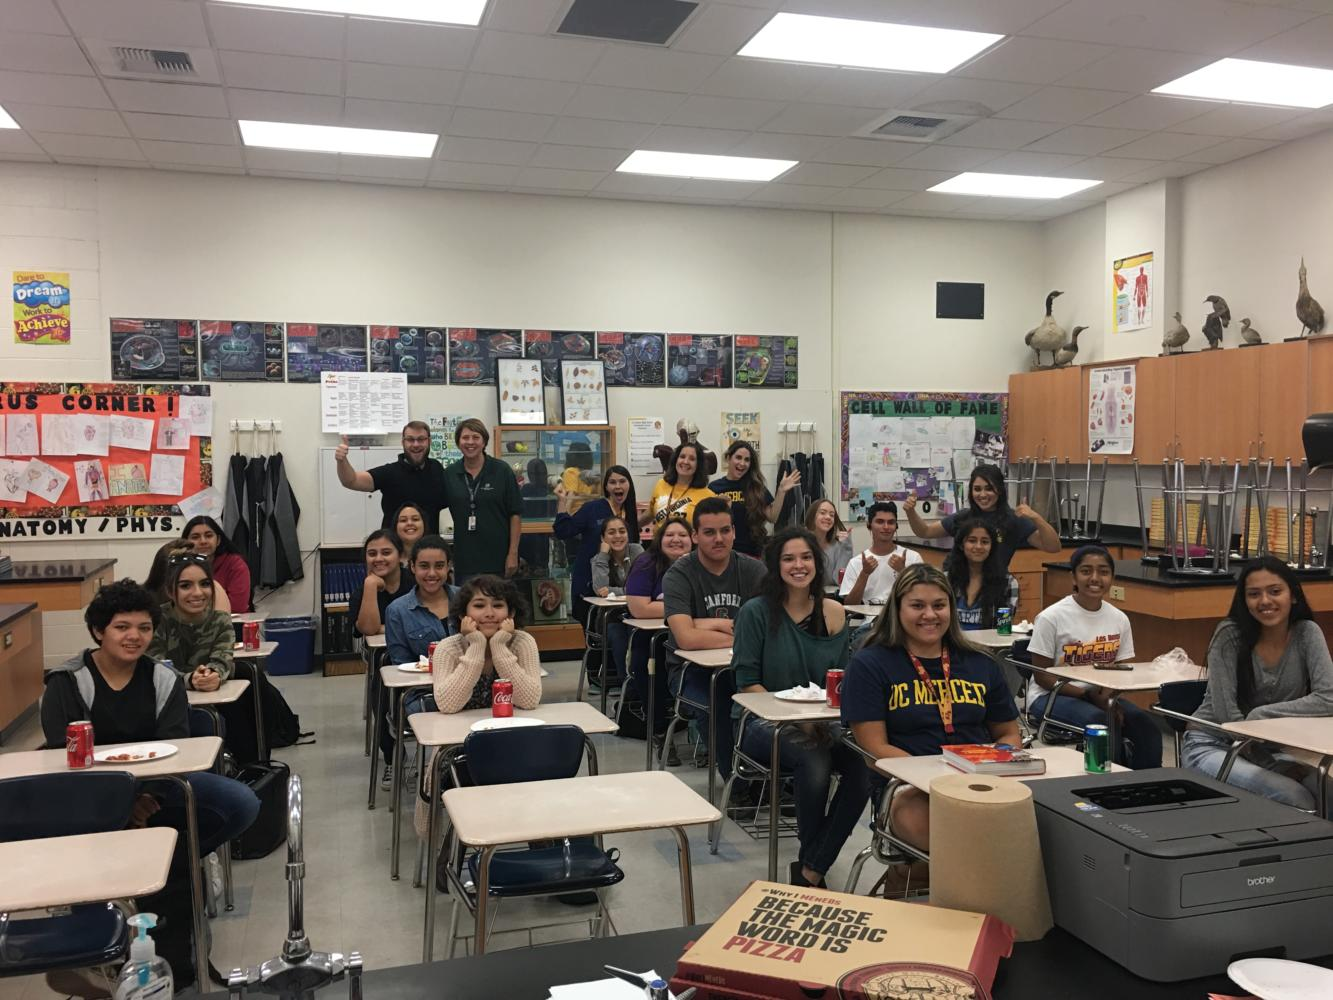 Featured Students and Teachers on September 13th at the College Panel in Mrs. Fajardo's class.